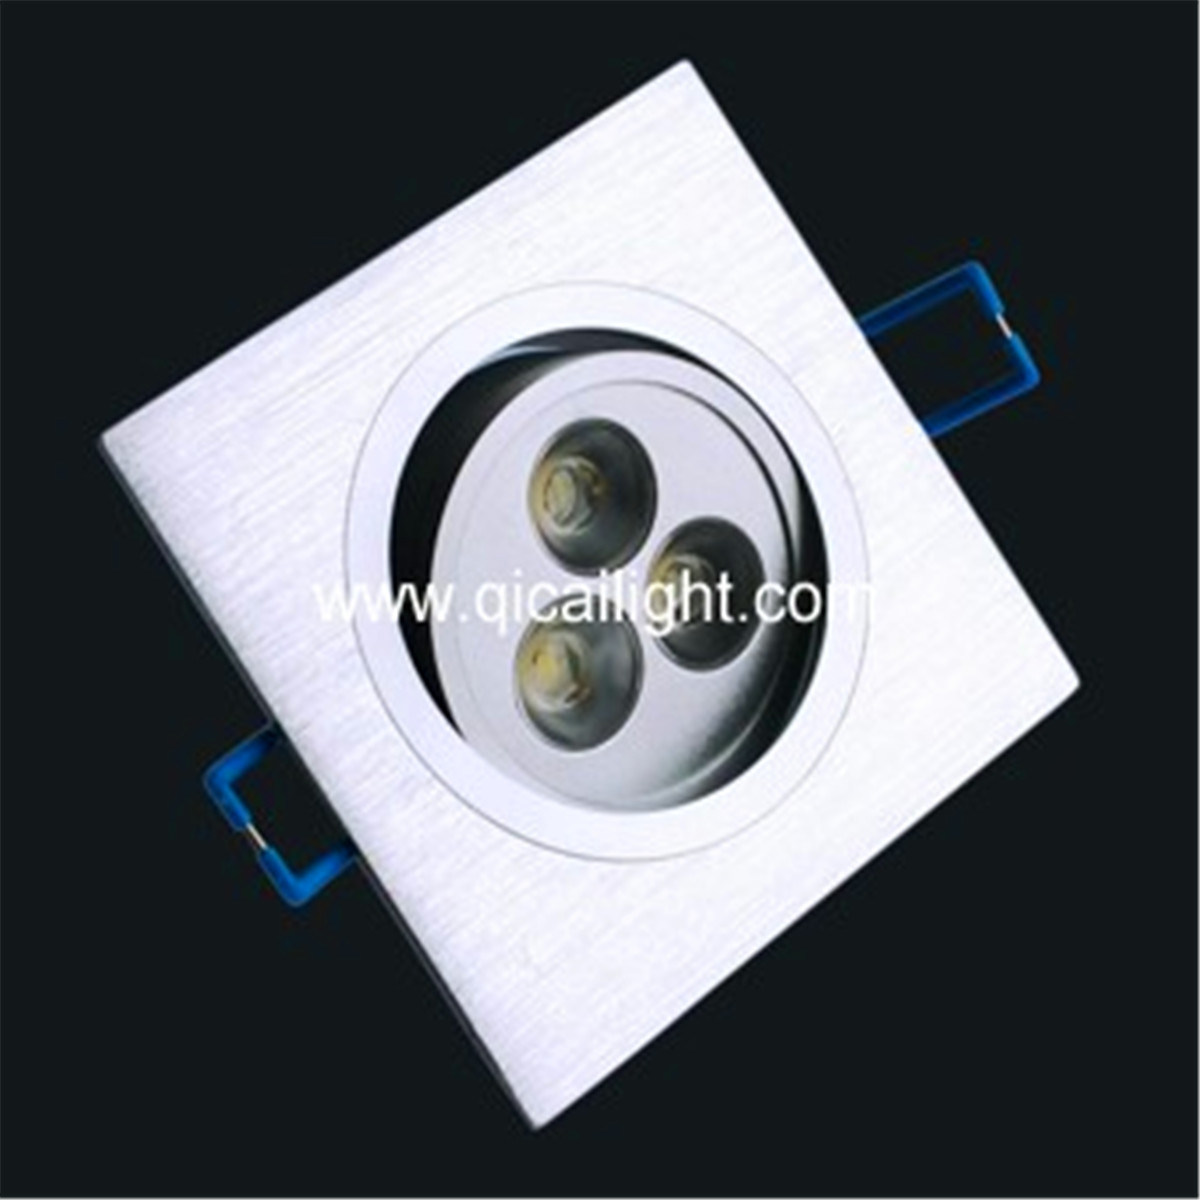 5X2W High Power LED Downlight